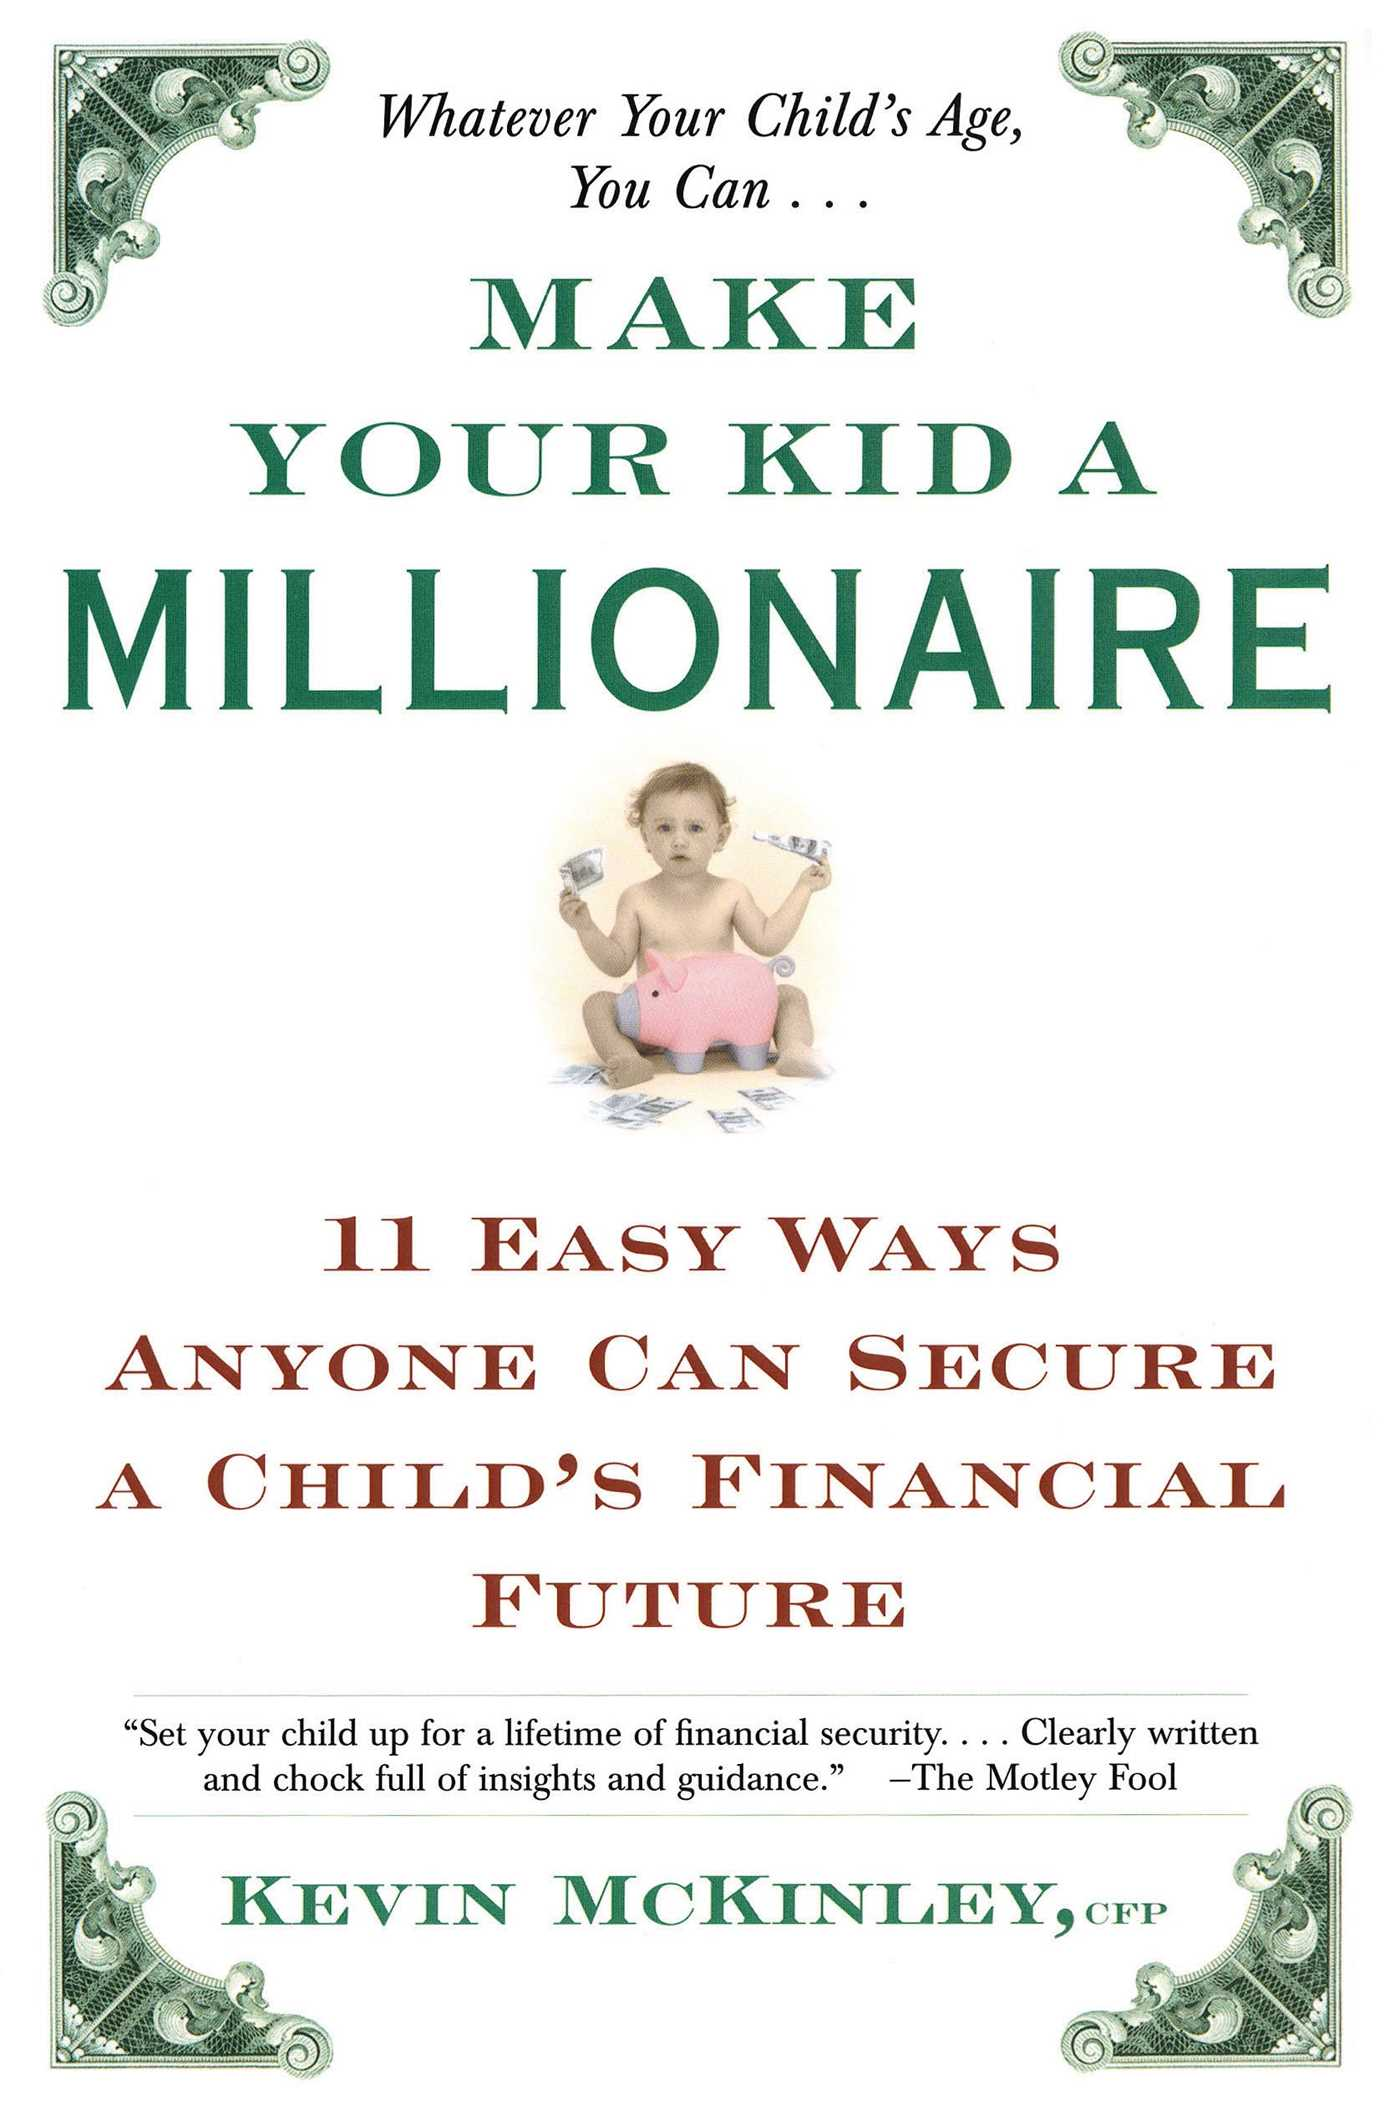 Make-your-kid-a-millionaire-9780684865645_hr